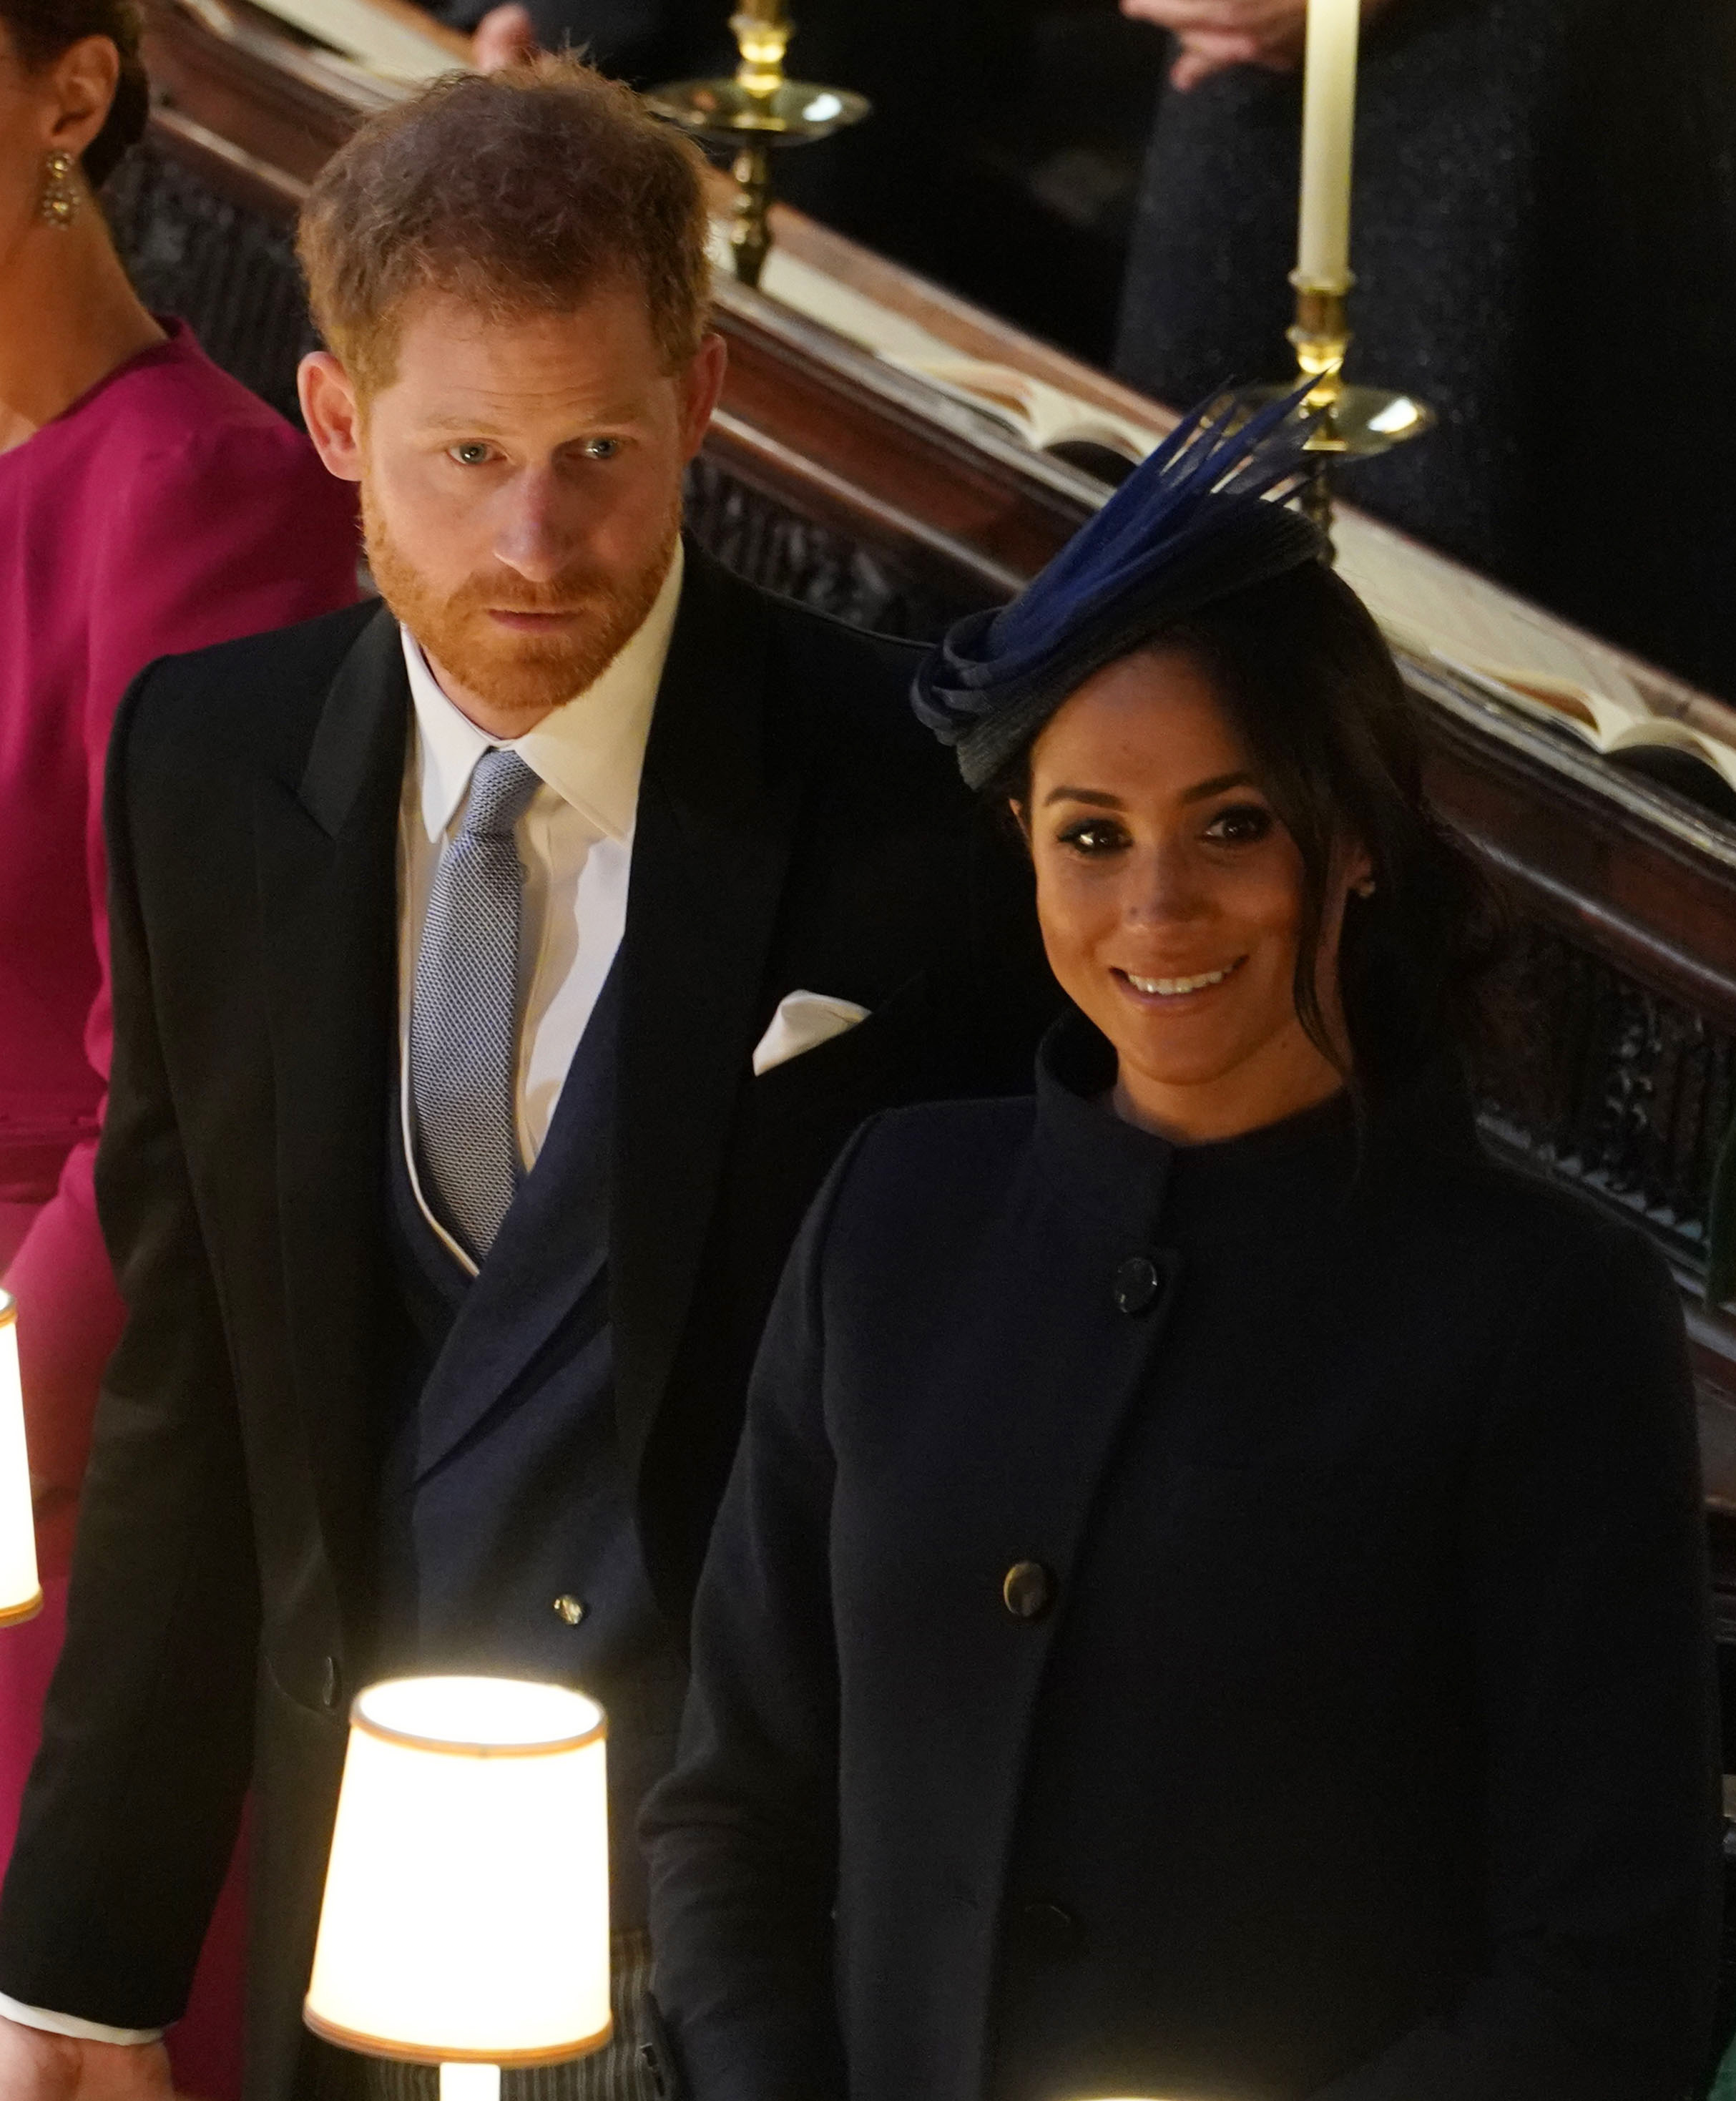 Prince Harry and Meghan Markle at the wedding of Princess Eugenie at St. George's Chapel on October 12 (Getty Images)